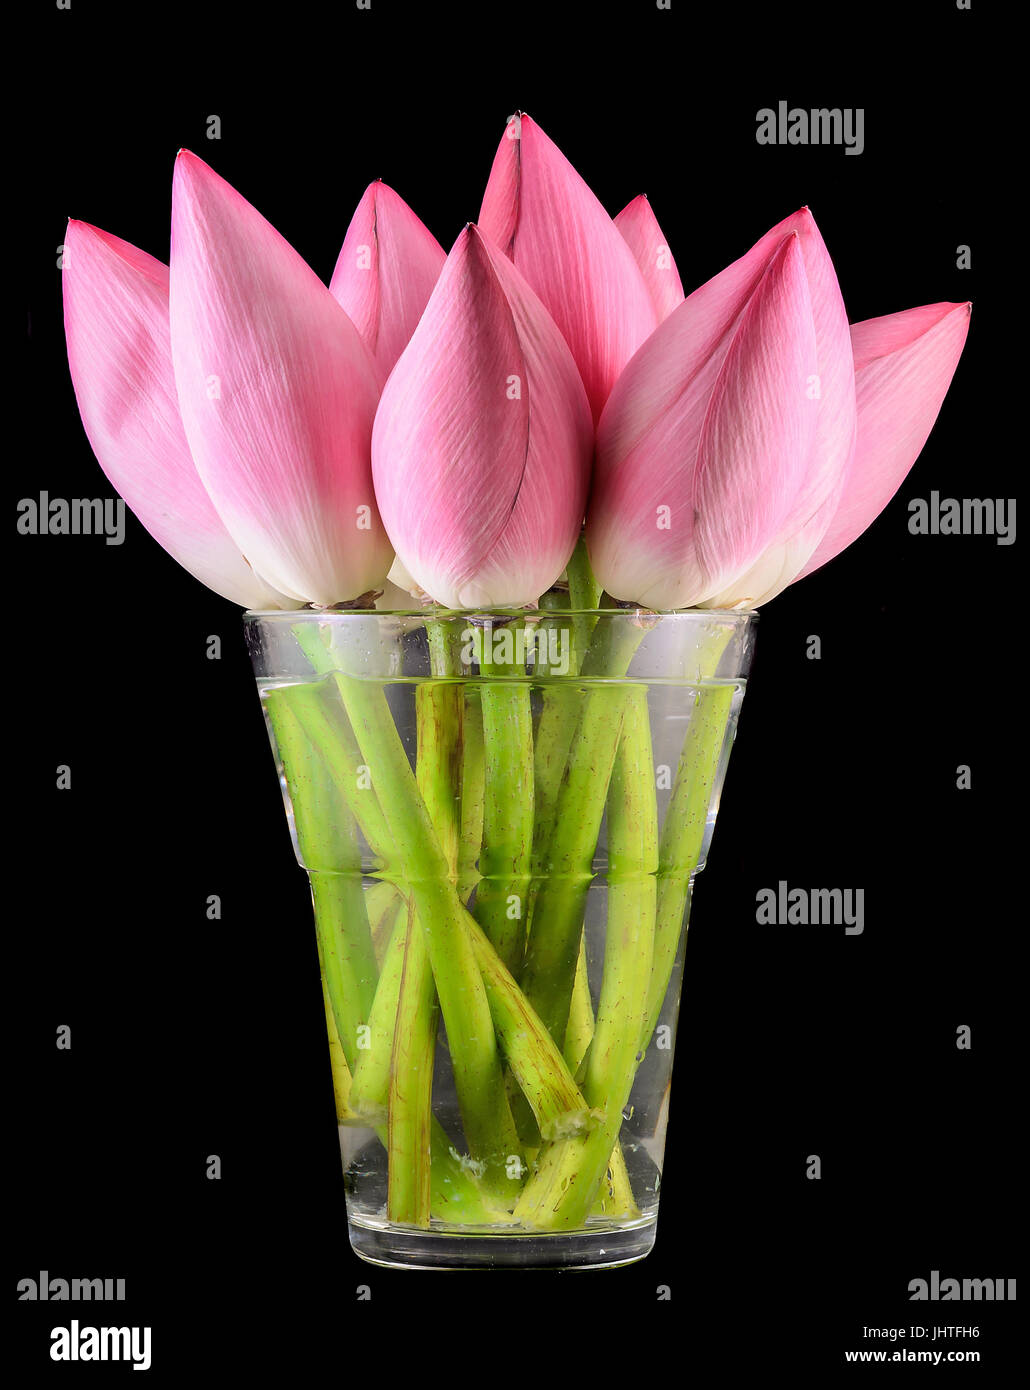 Pink Lotus Flowers In A Transparent Vase Water Lily Bud Close Up